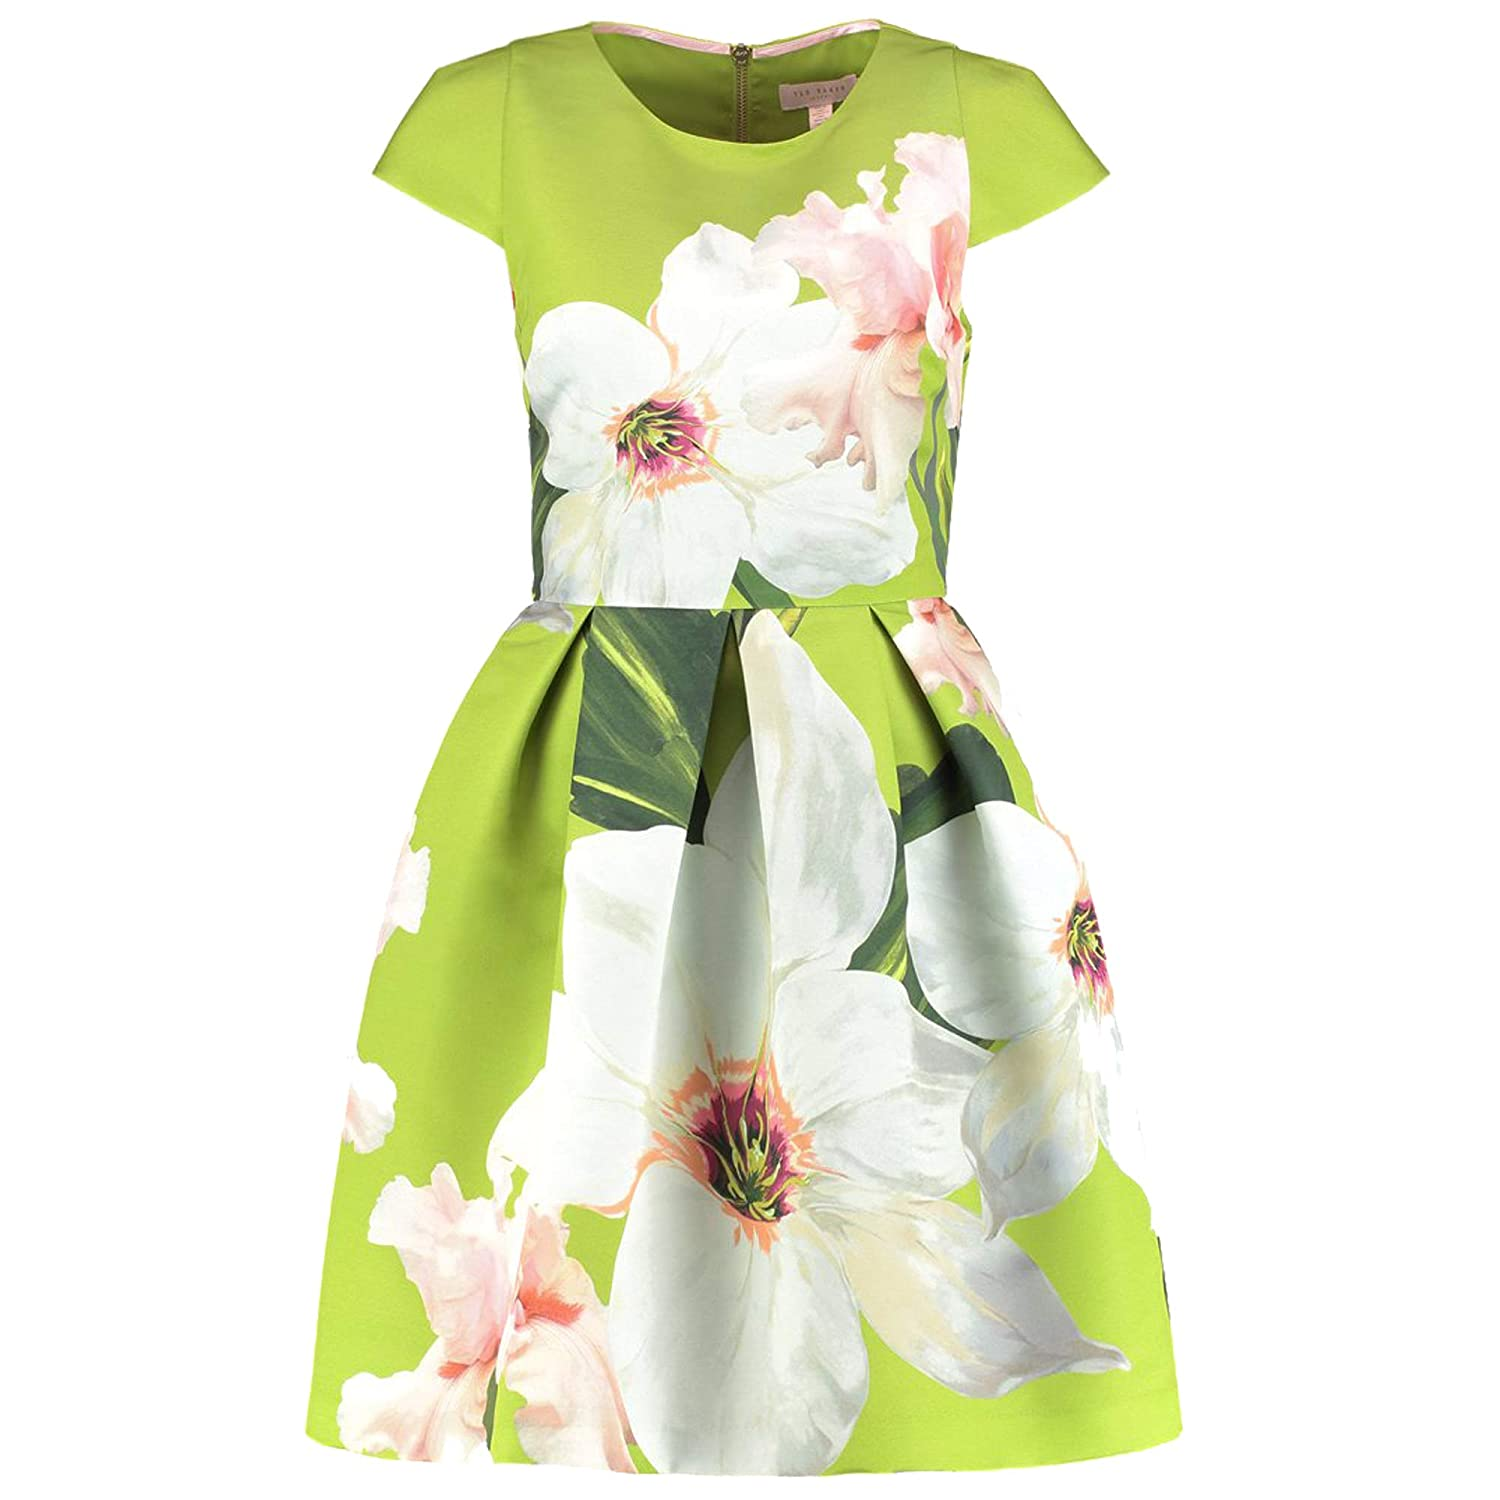 687da9a202e5 Amazon.com  Ted Baker Light Green Lynetta Chatsworth Bloom Skater Dress  (3)  Clothing